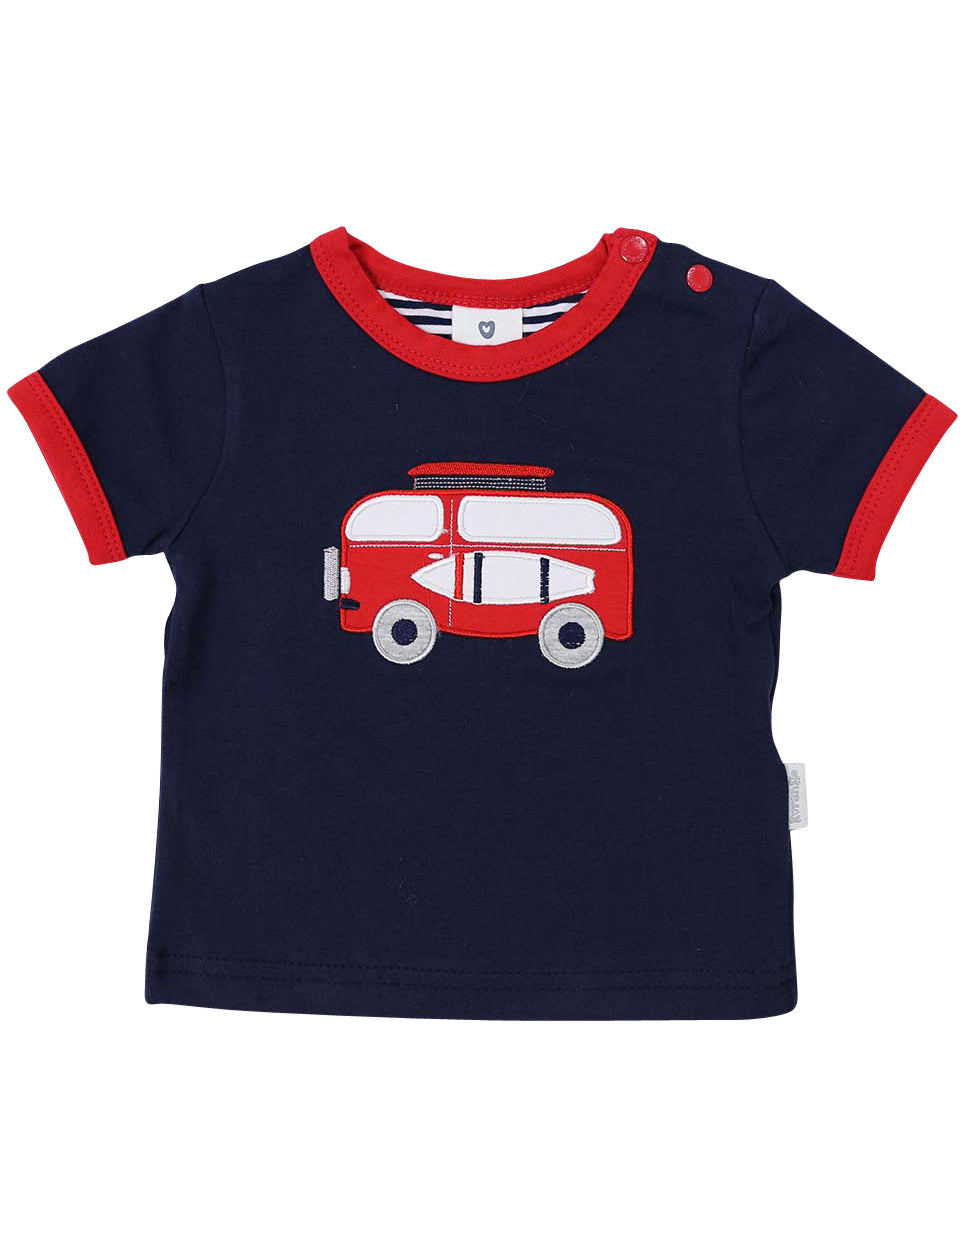 KORANGO Camper Van Top in Navy